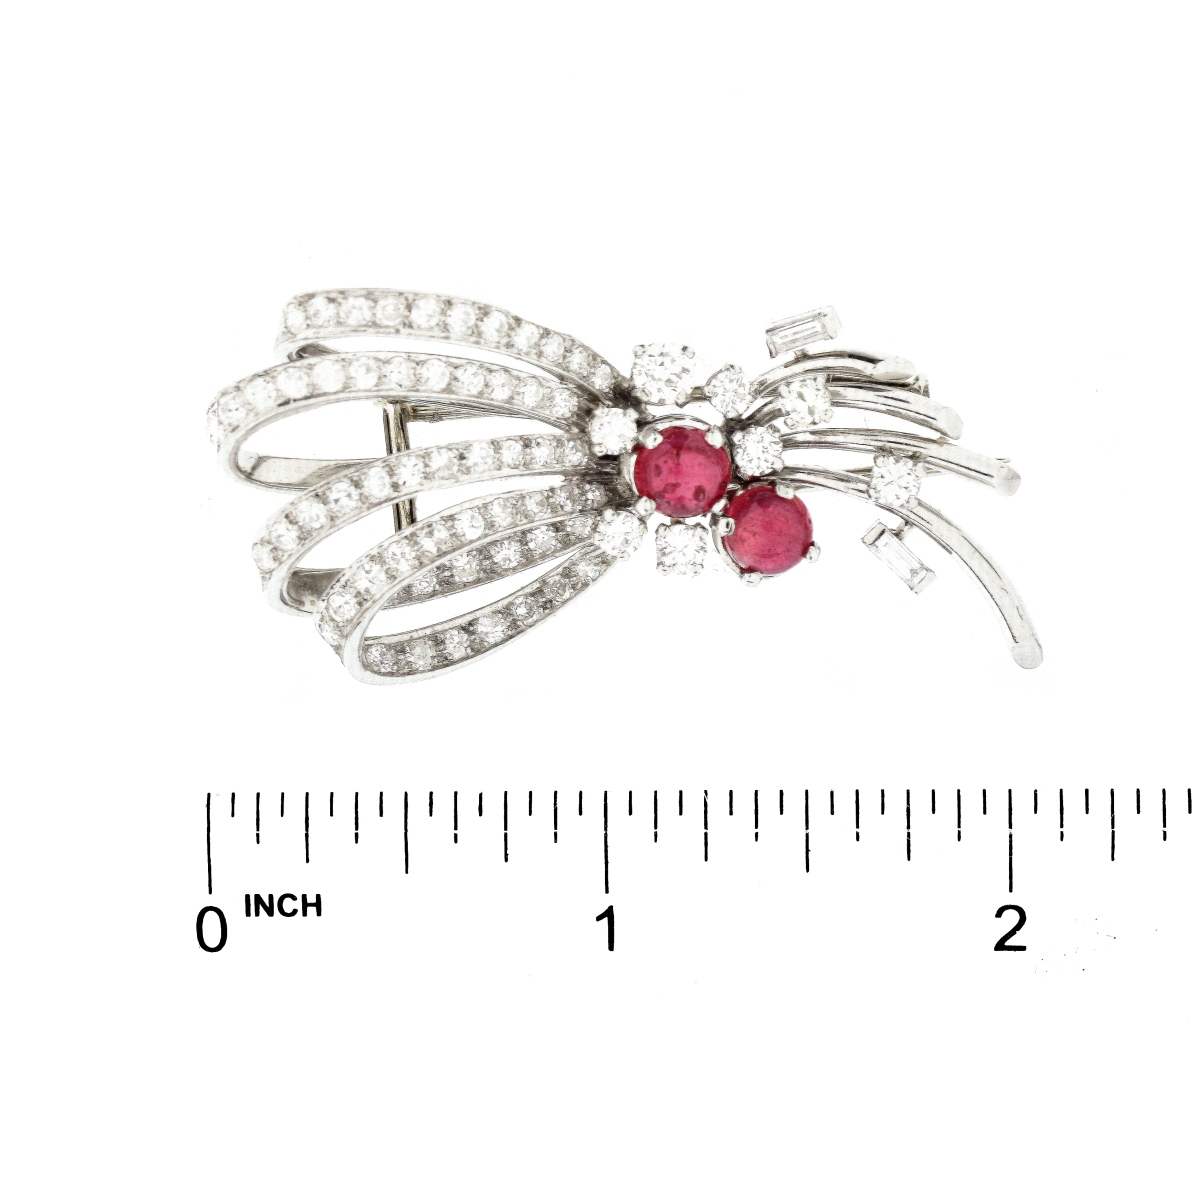 French Diamond, Ruby and Platinum Bow Brooch